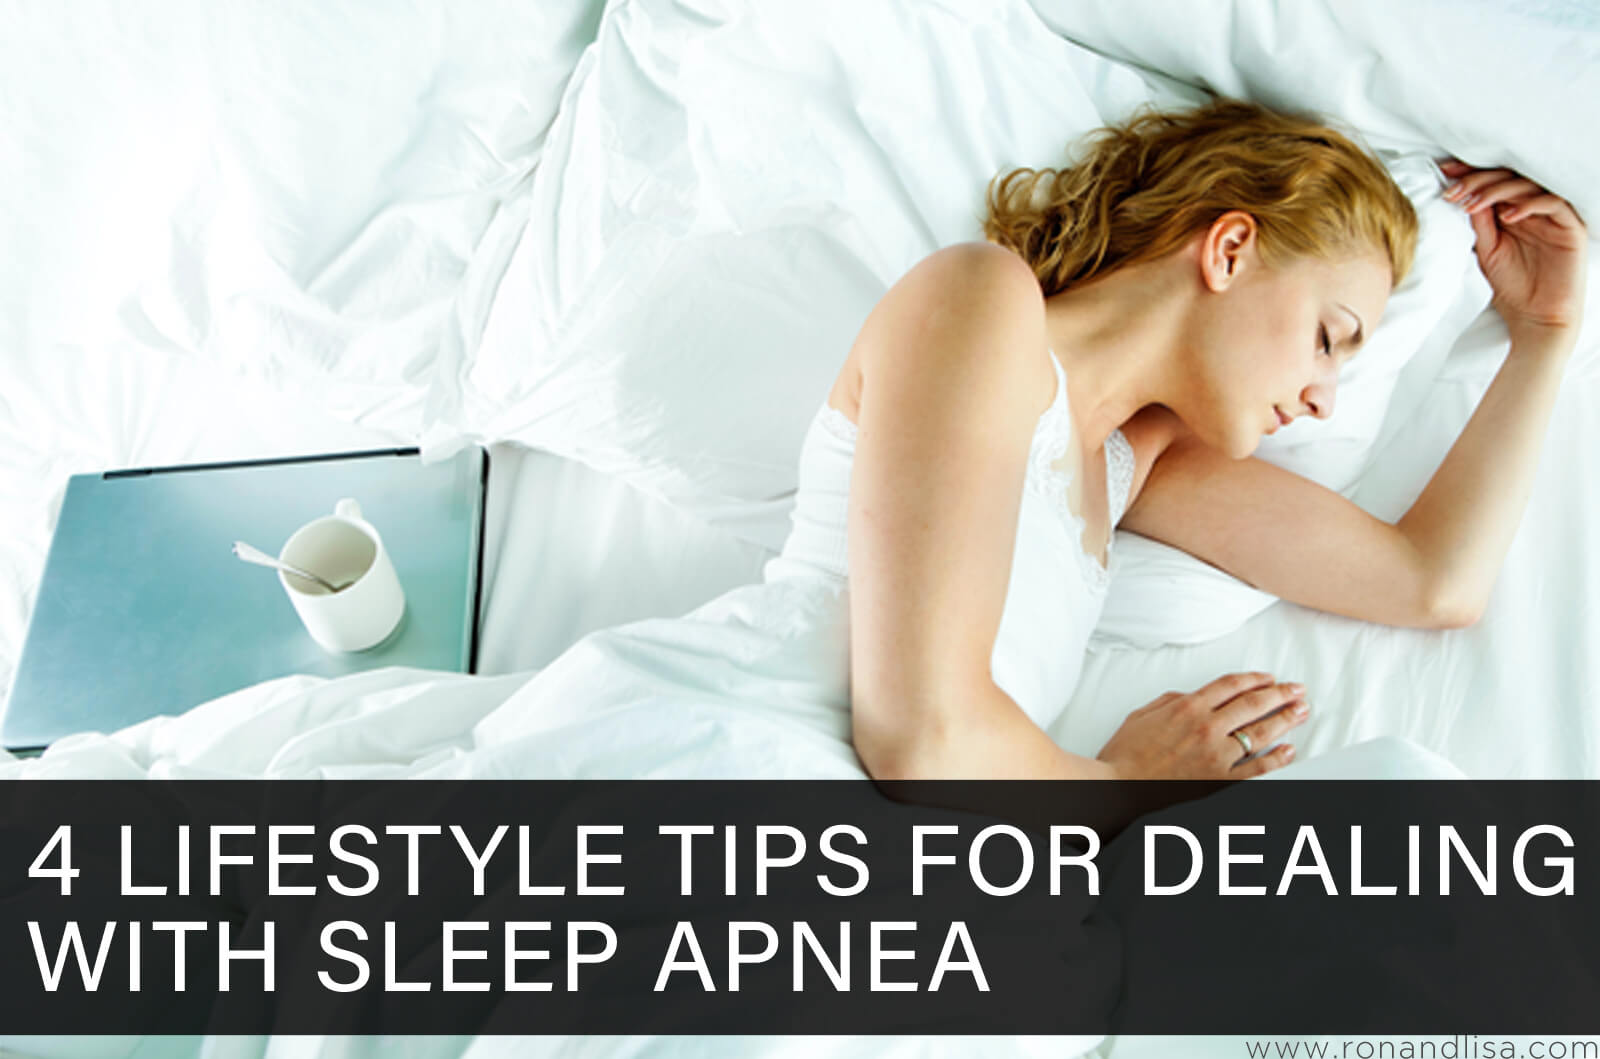 4 Lifestyle Tips for Dealing with Sleep Apnea